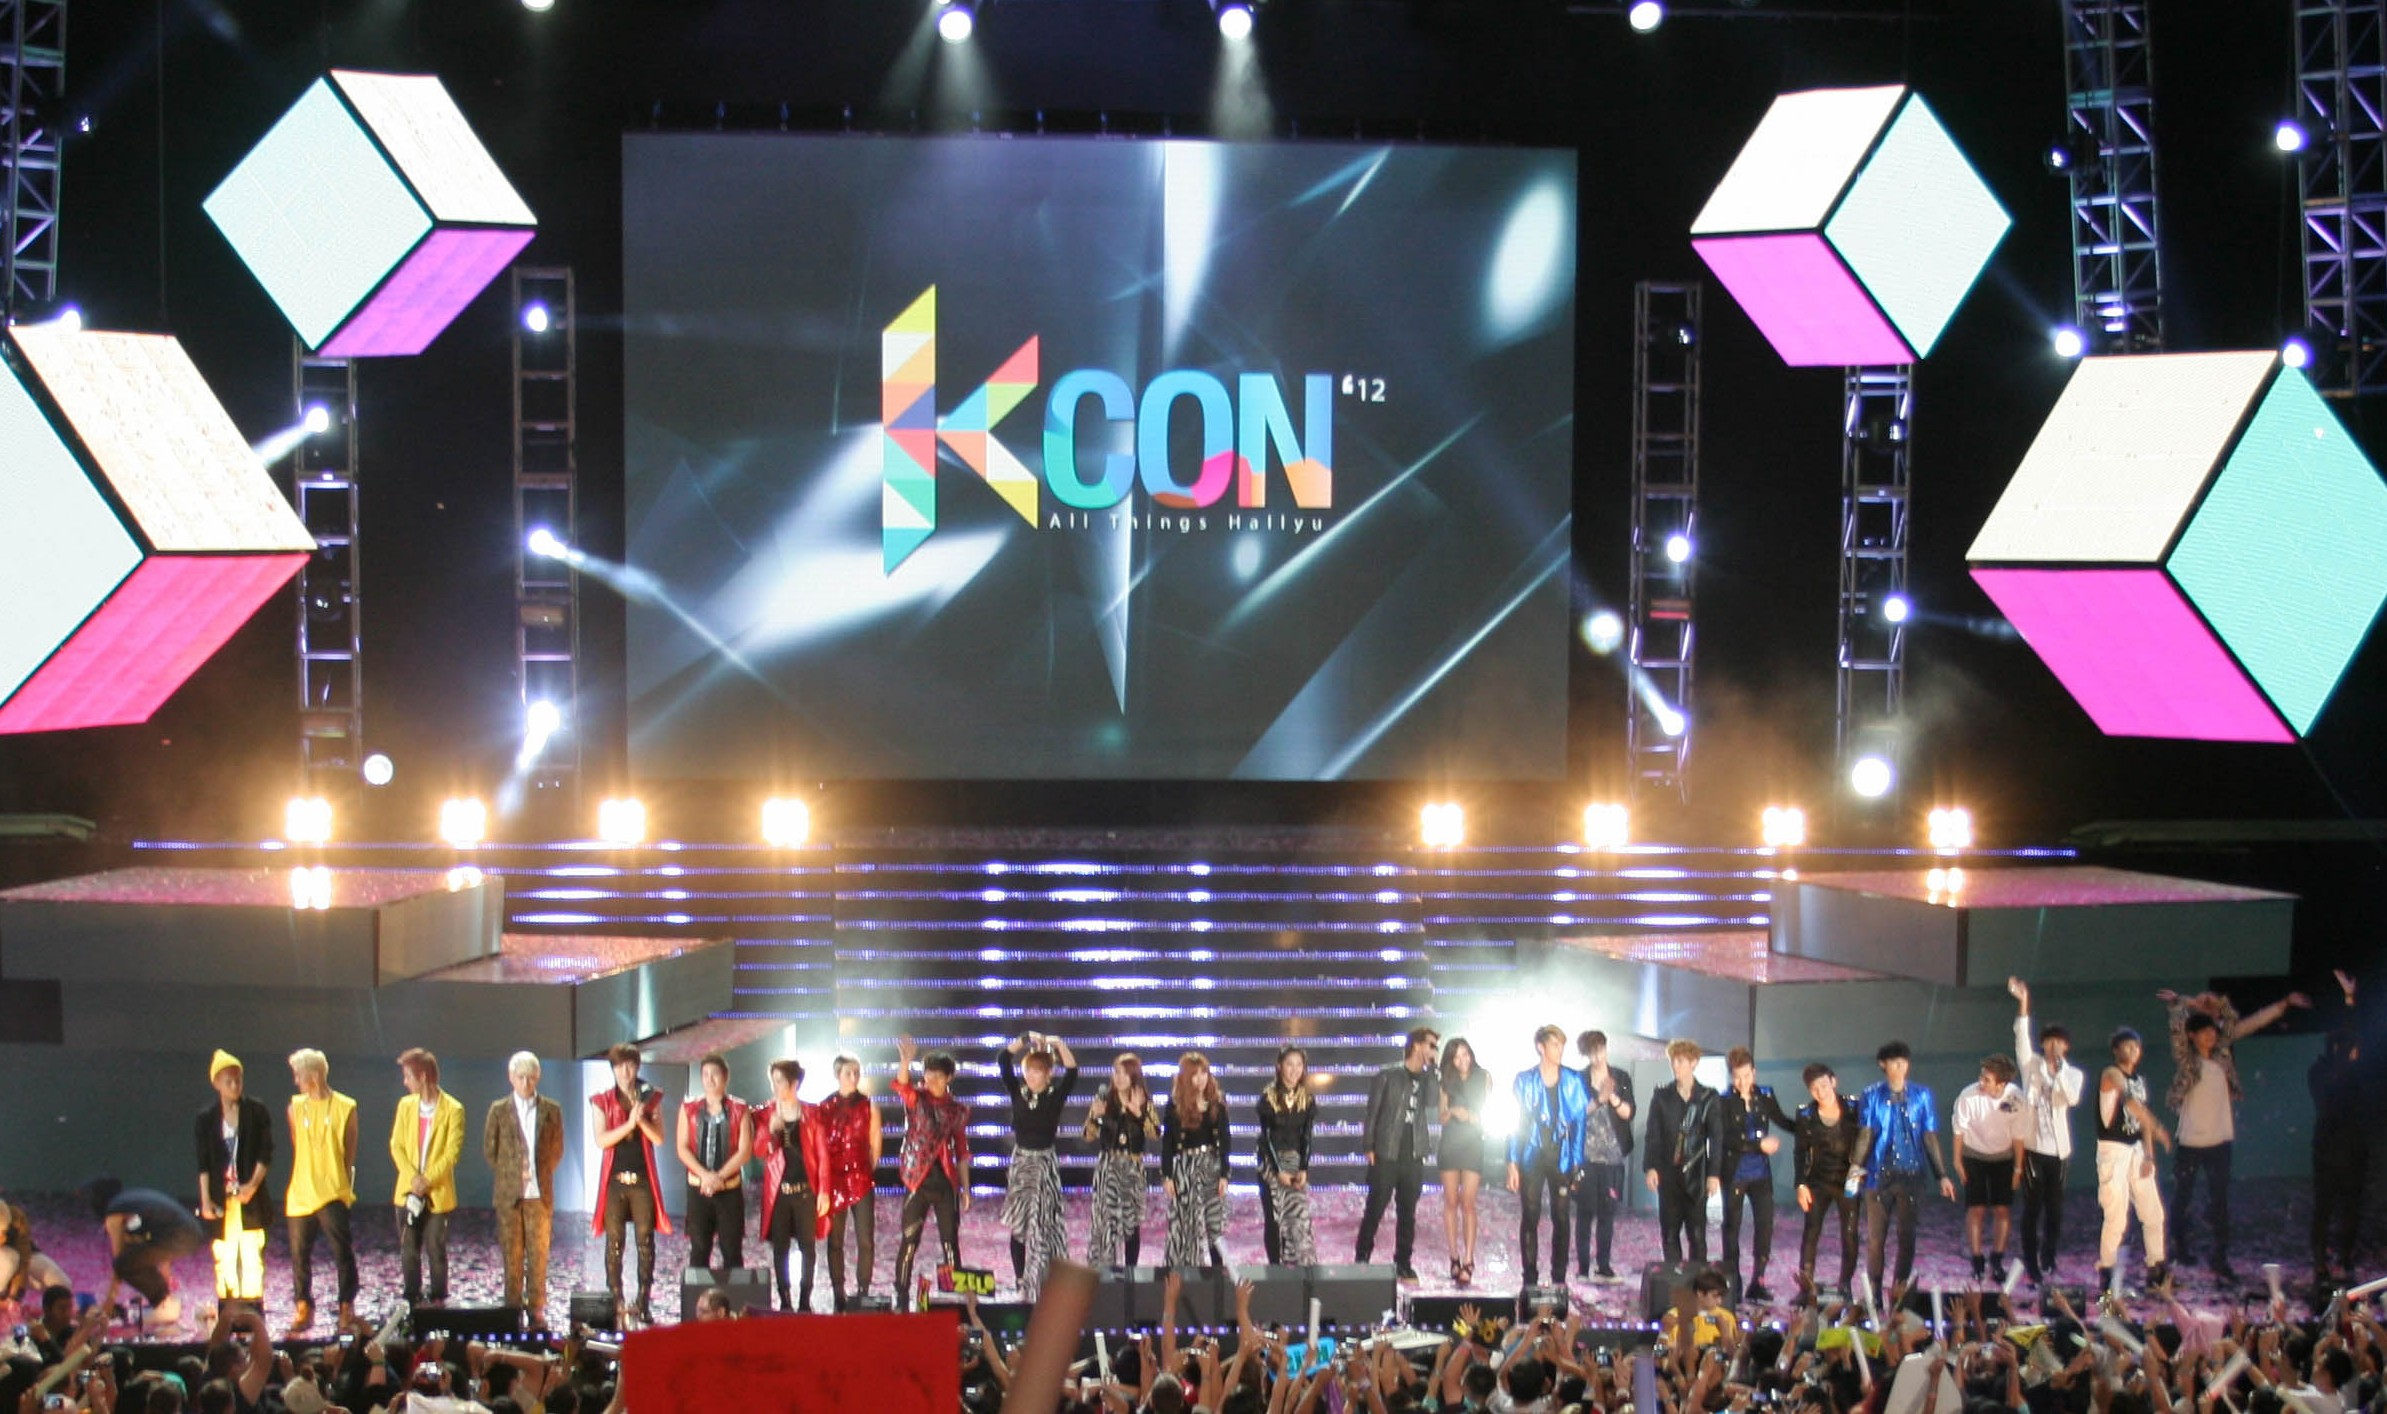 [Event Review] KCON 2012 in Irvine